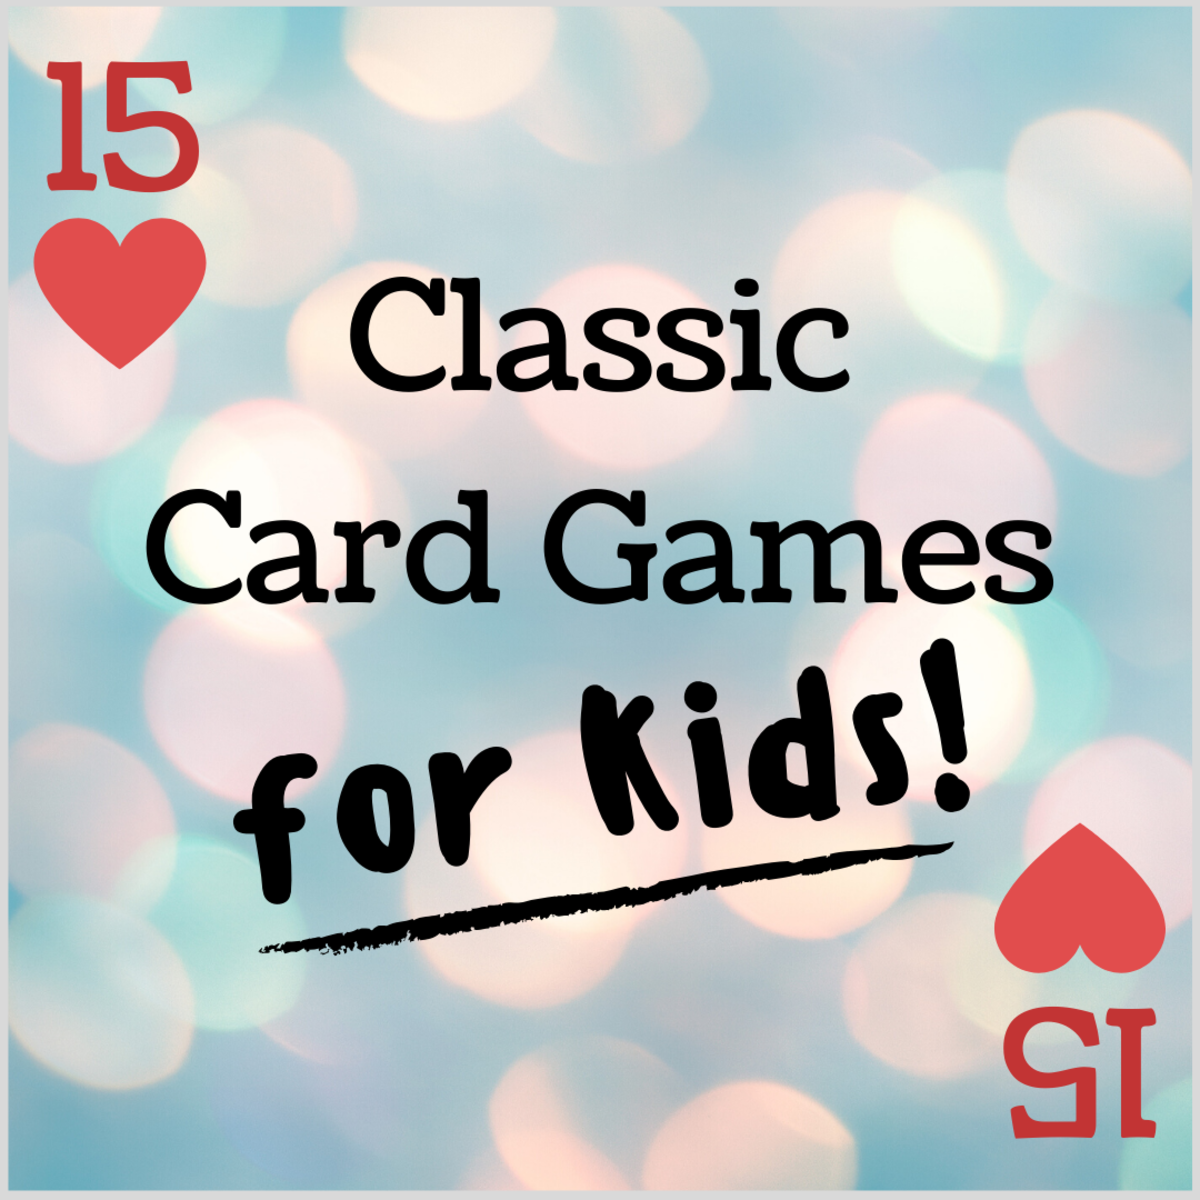 There are loads of classic card games that kids can play just as well as adults (if not better). Learn the rules to 15 great games!